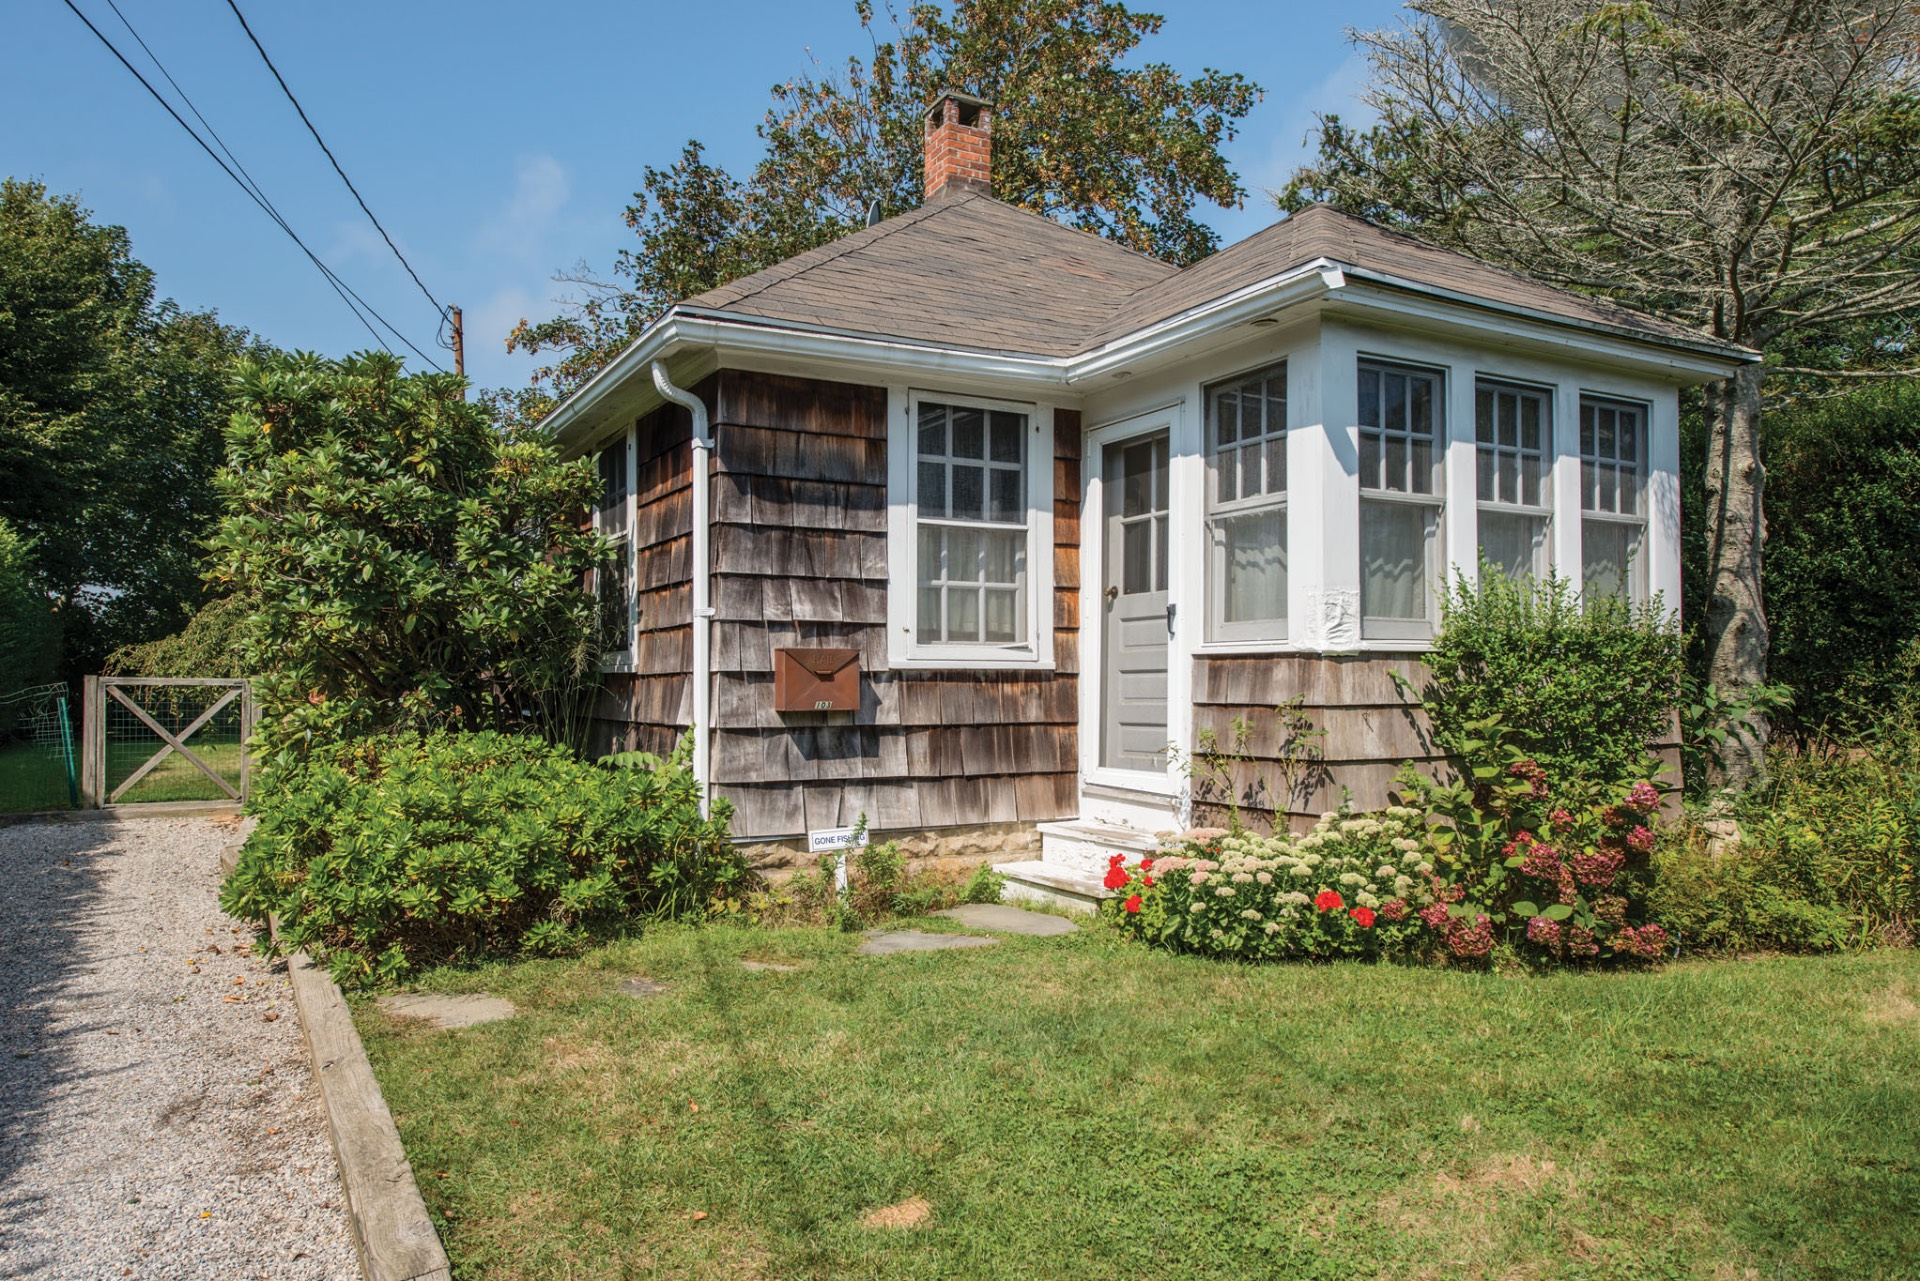 Single Family Home for Sale at Lovely Bungalow In The Heart Of The Village 103 Pelham Street, Southampton, New York